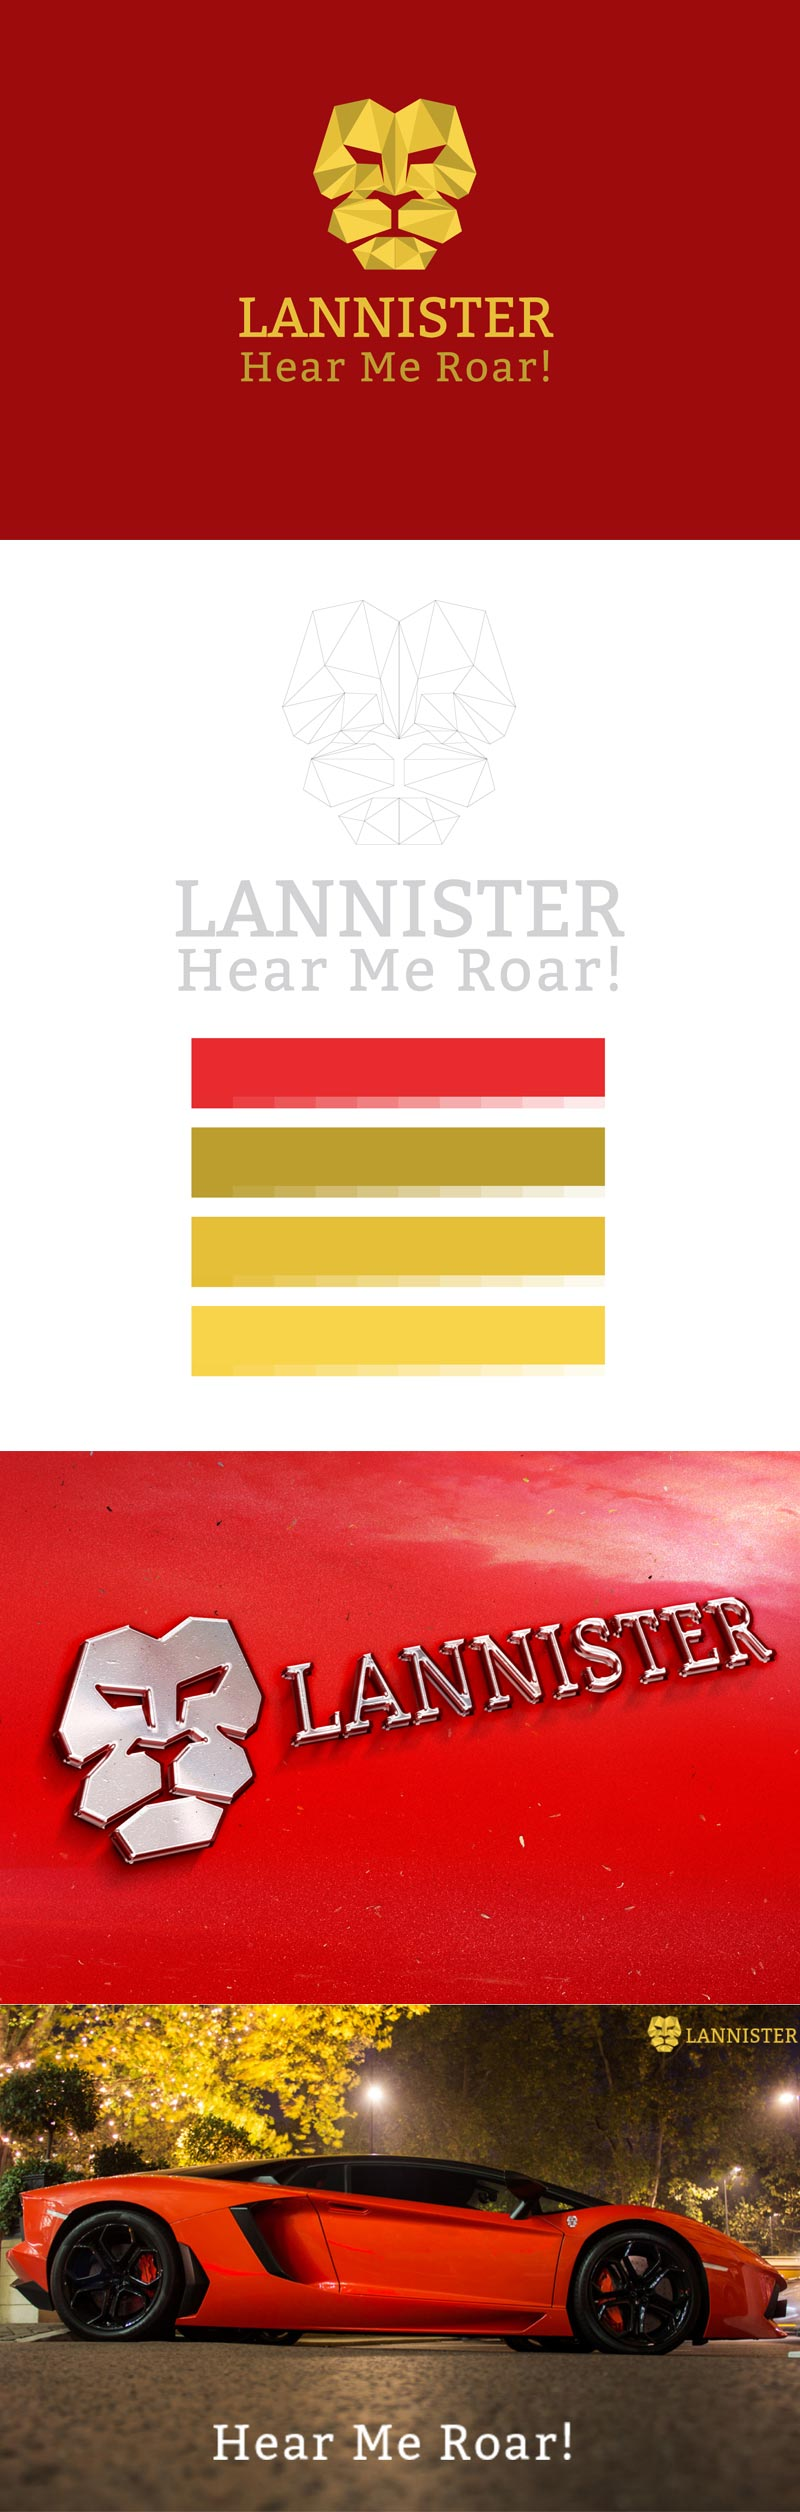 Lannister Luxury Sports Cars